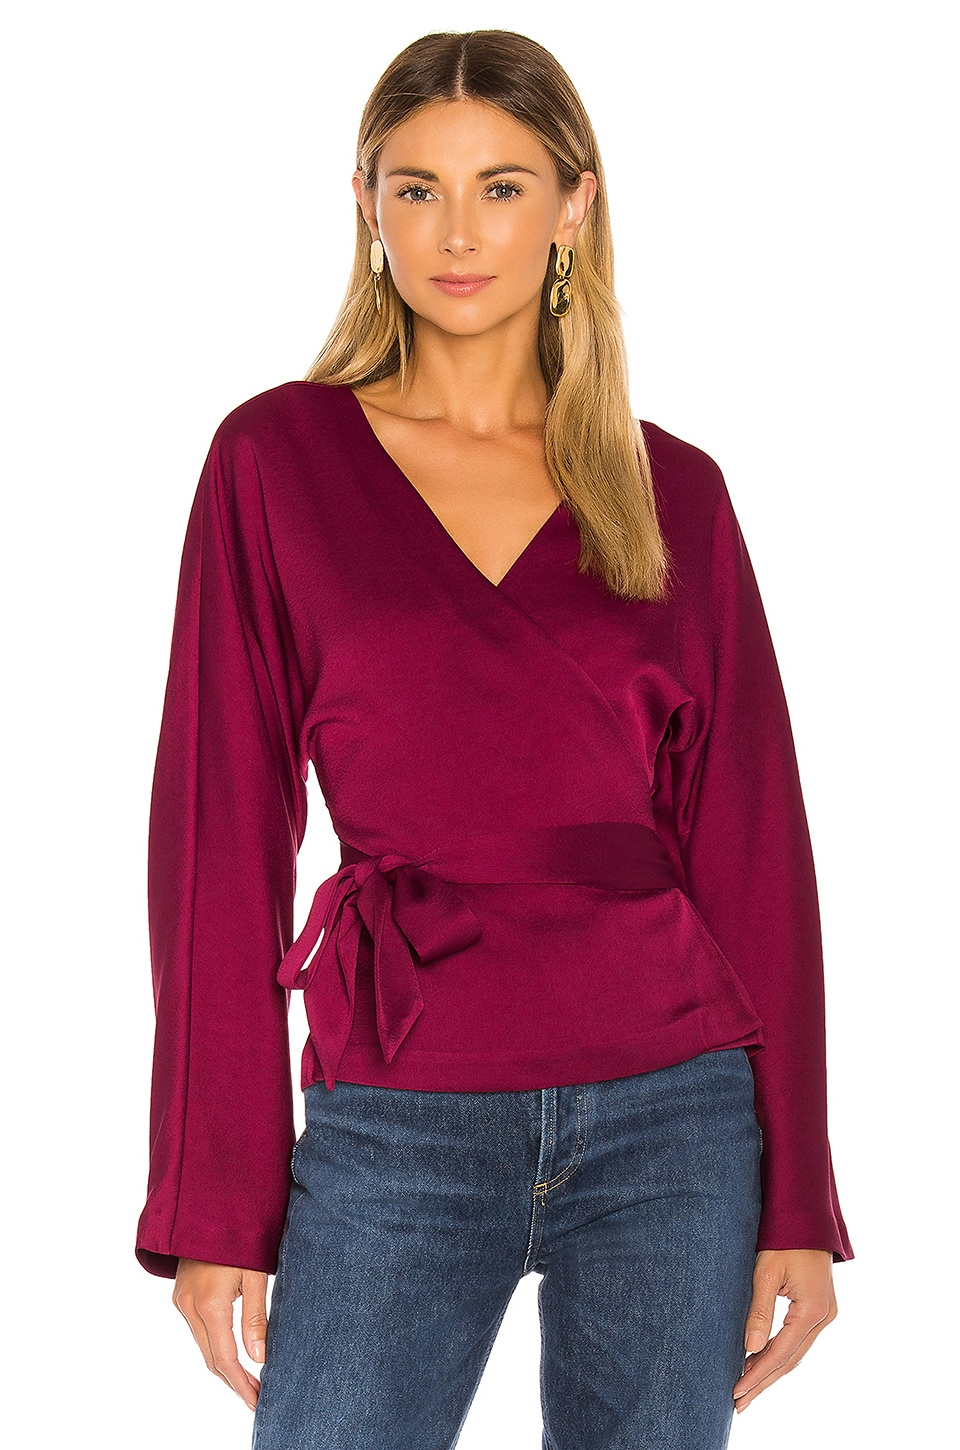 L'Academie The Bonnie Top in Rumba Red